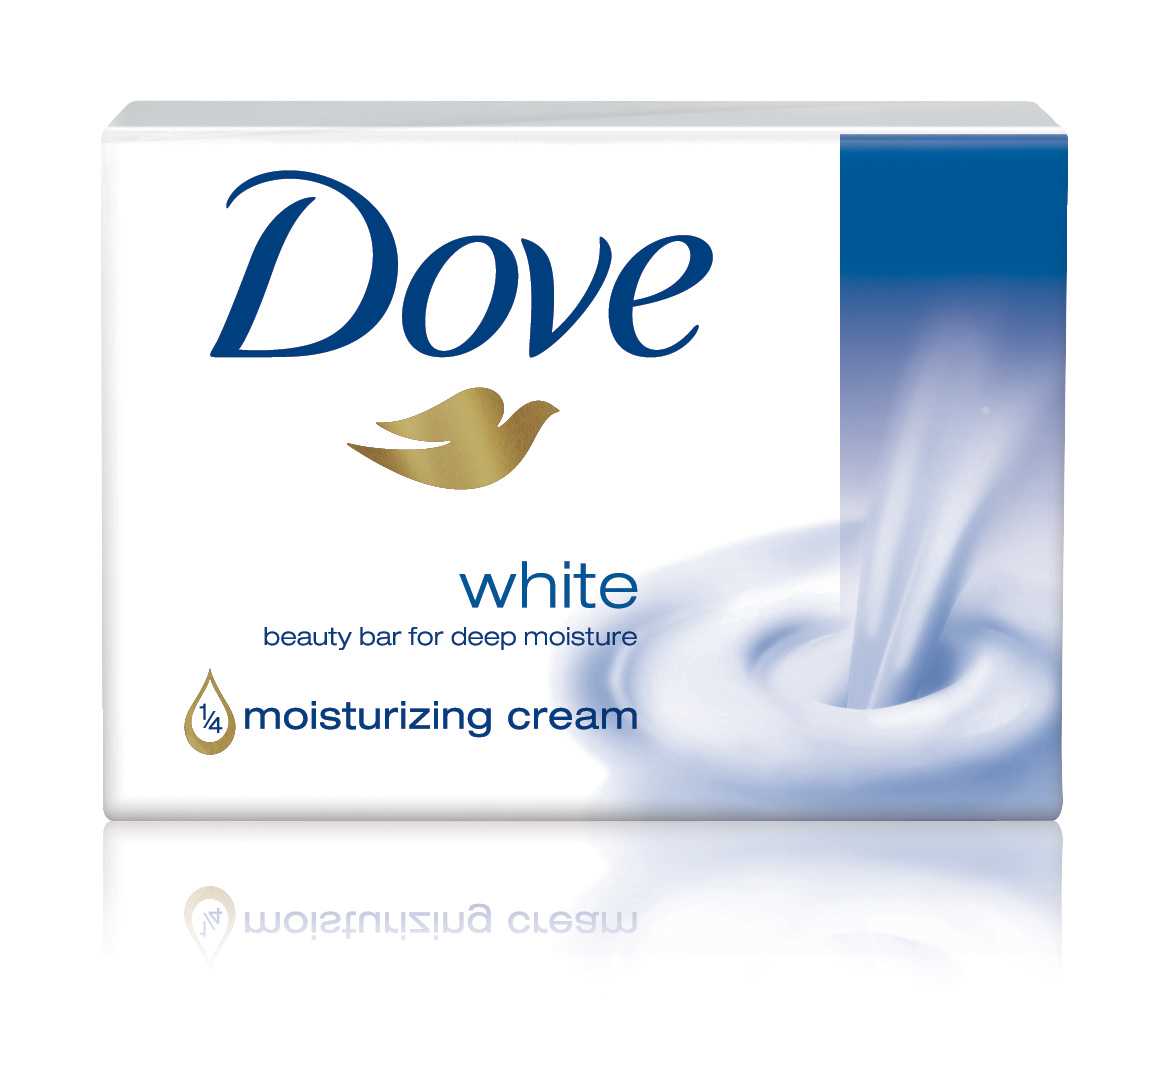 Share Your Dove Beauty Story!